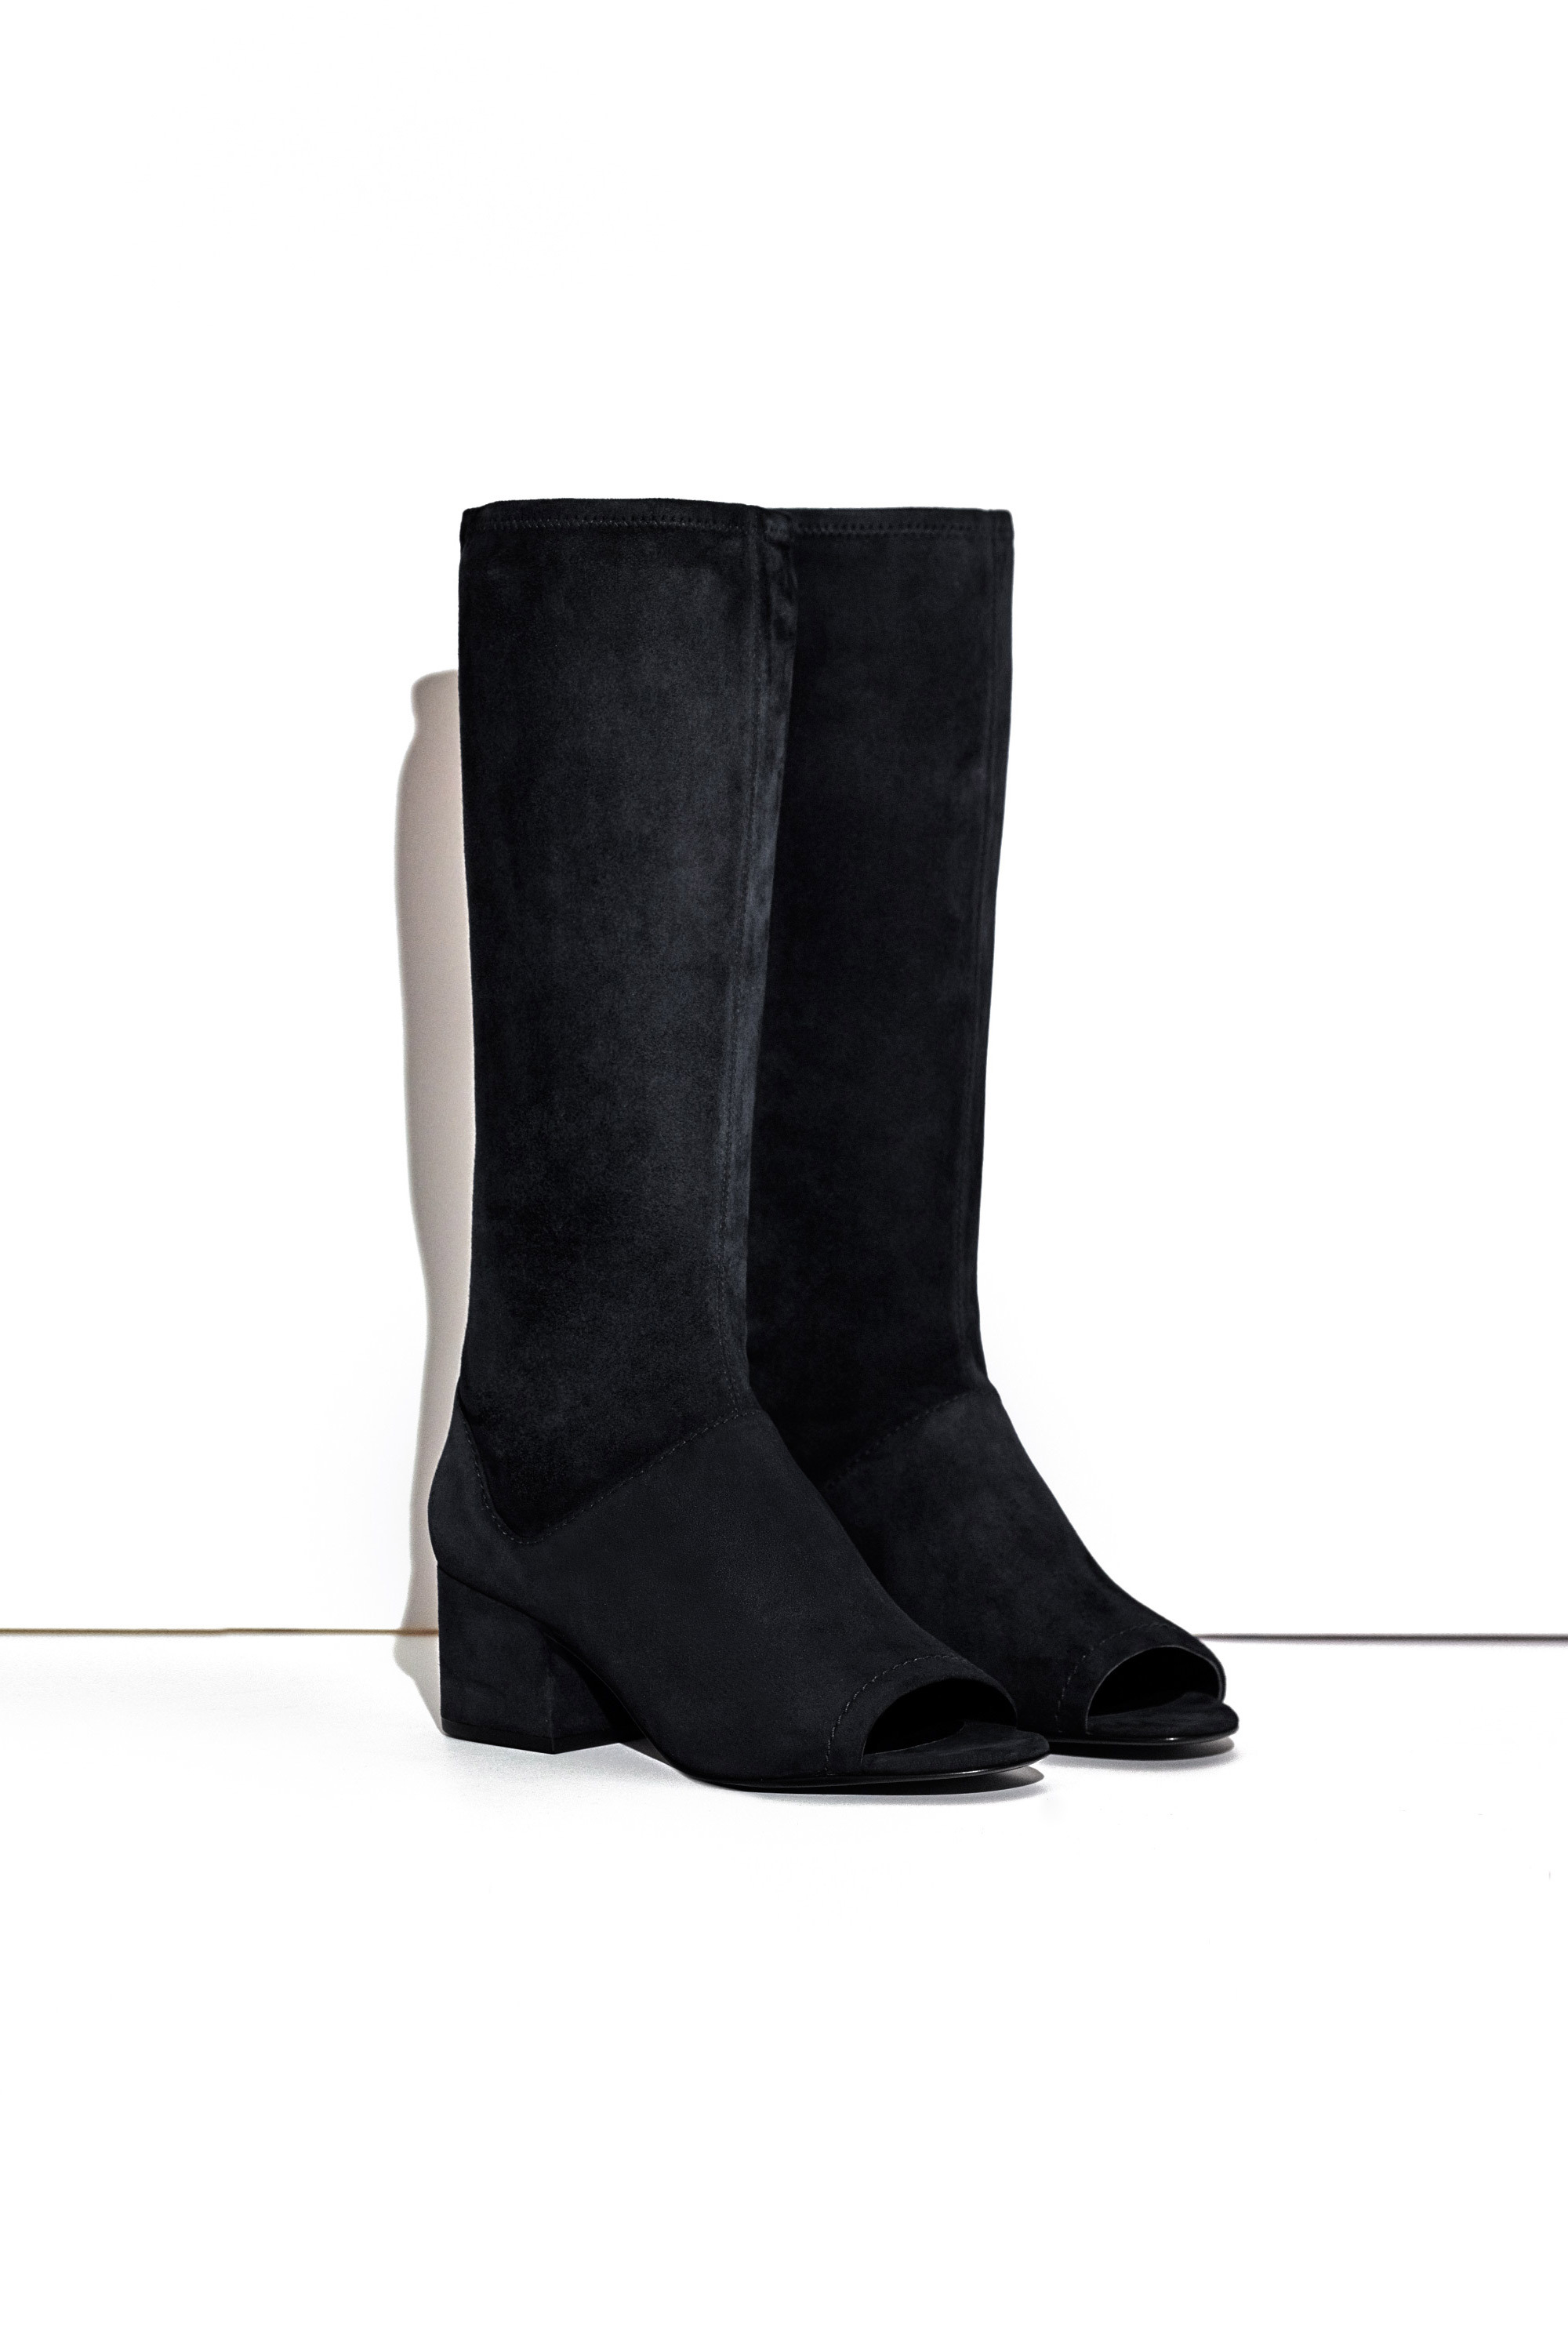 3.1 Phillip Lim Suede Cube Open-toe Boot in Night (Blue)